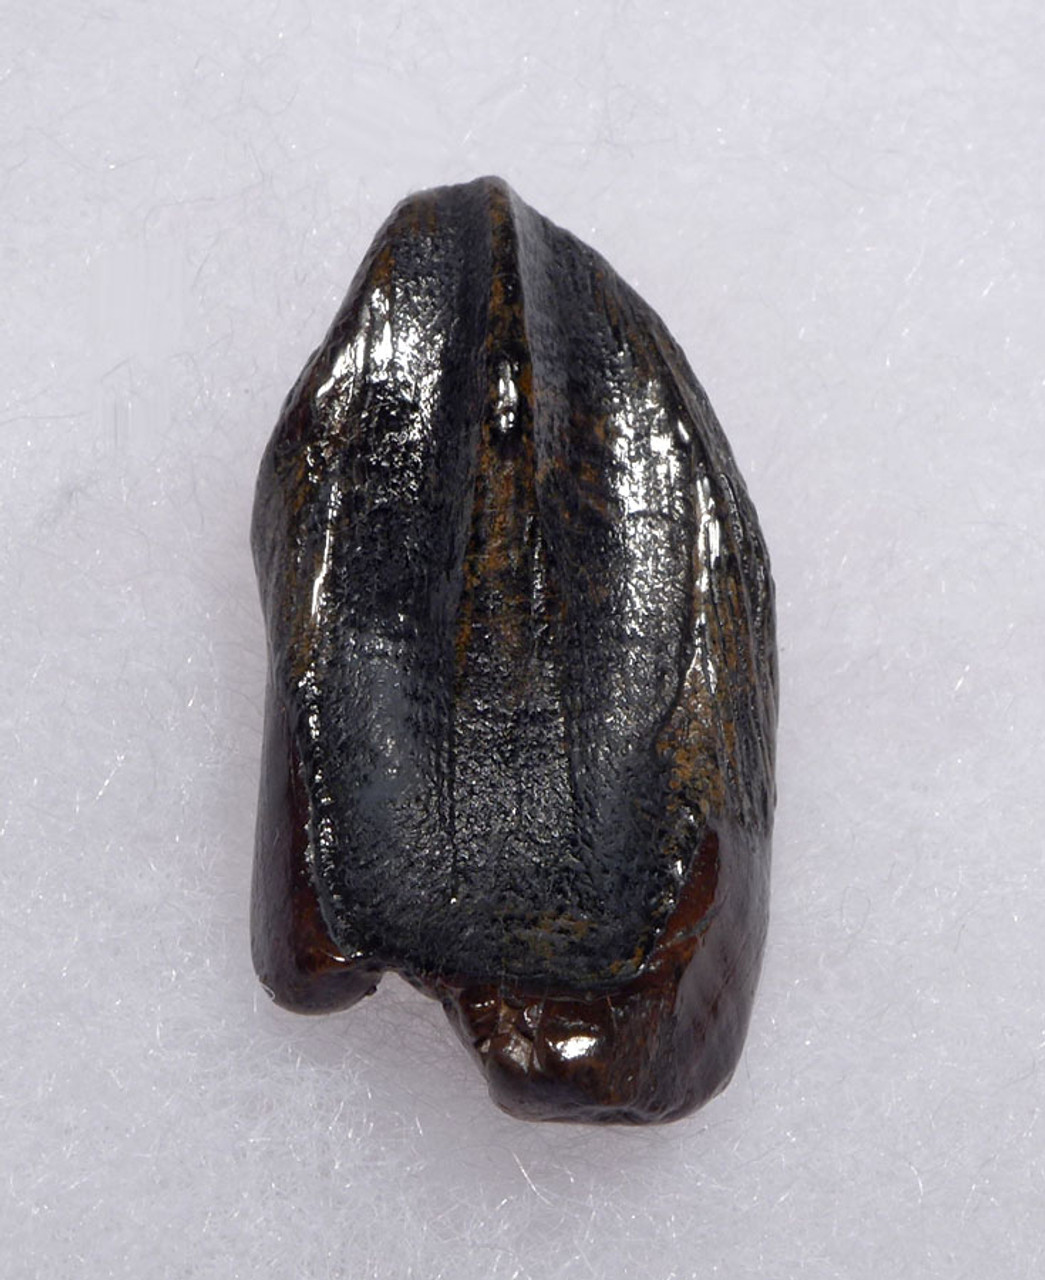 FINEST LARGE TRICERATOPS DINOSAUR TOOTH WITH UNWORN CROWN AND ROOT *DT19-042X